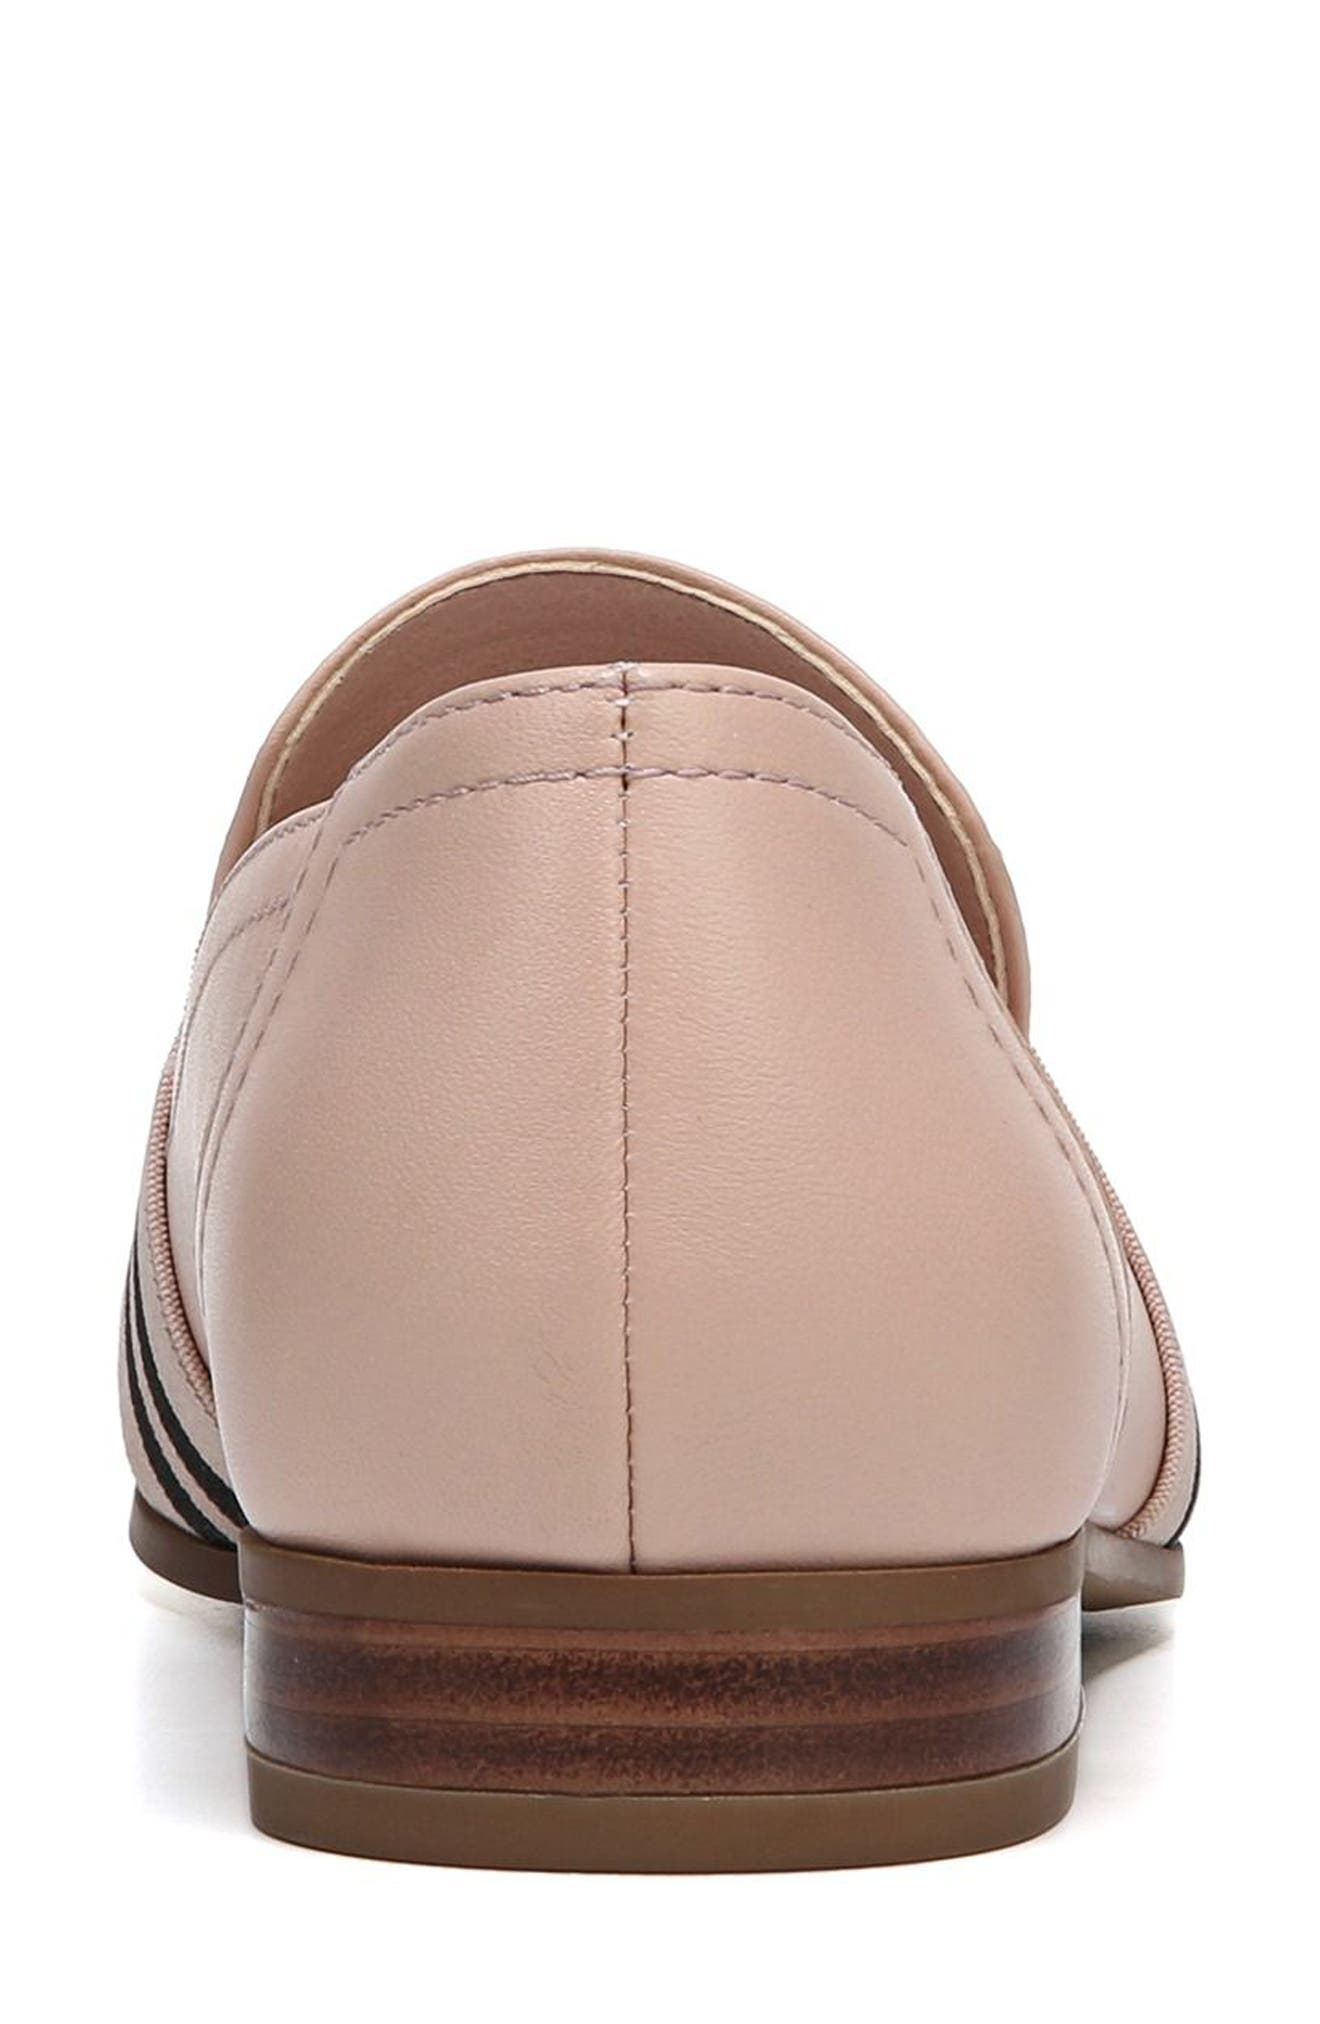 Odyssey Loafer,                             Alternate thumbnail 6, color,                             Blush Leather